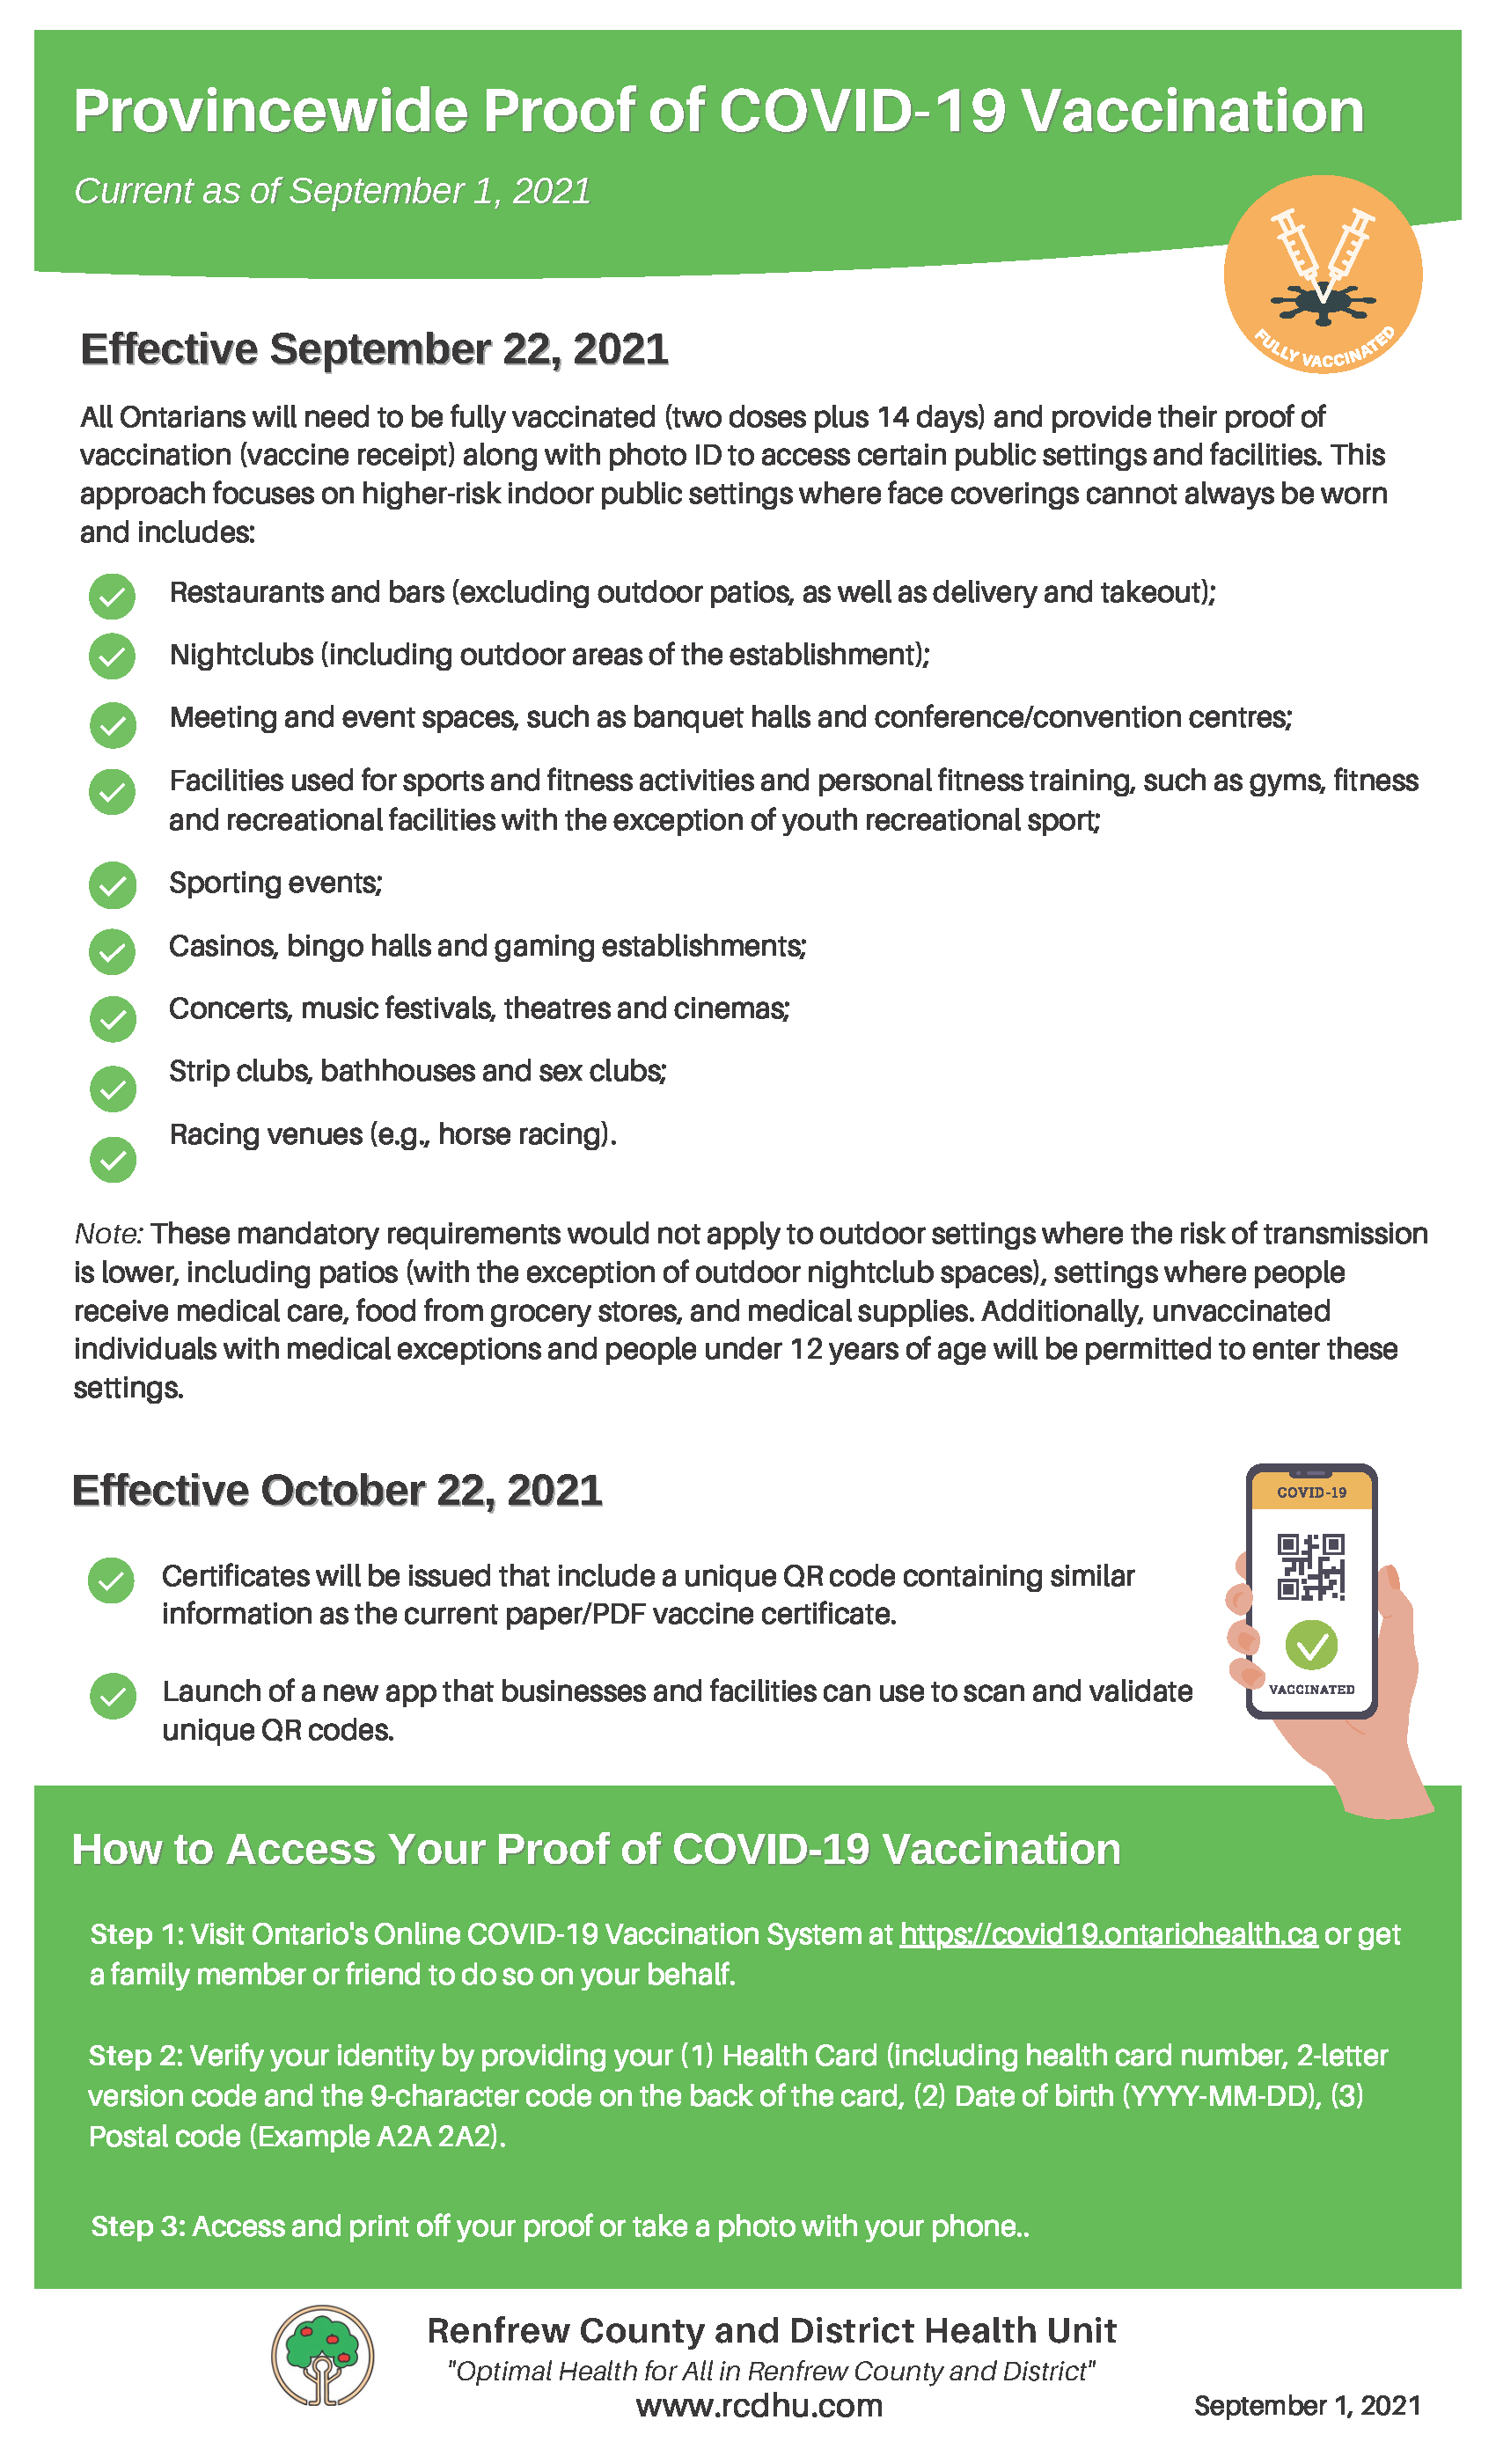 Graphic on Provincewide vaccination proof details